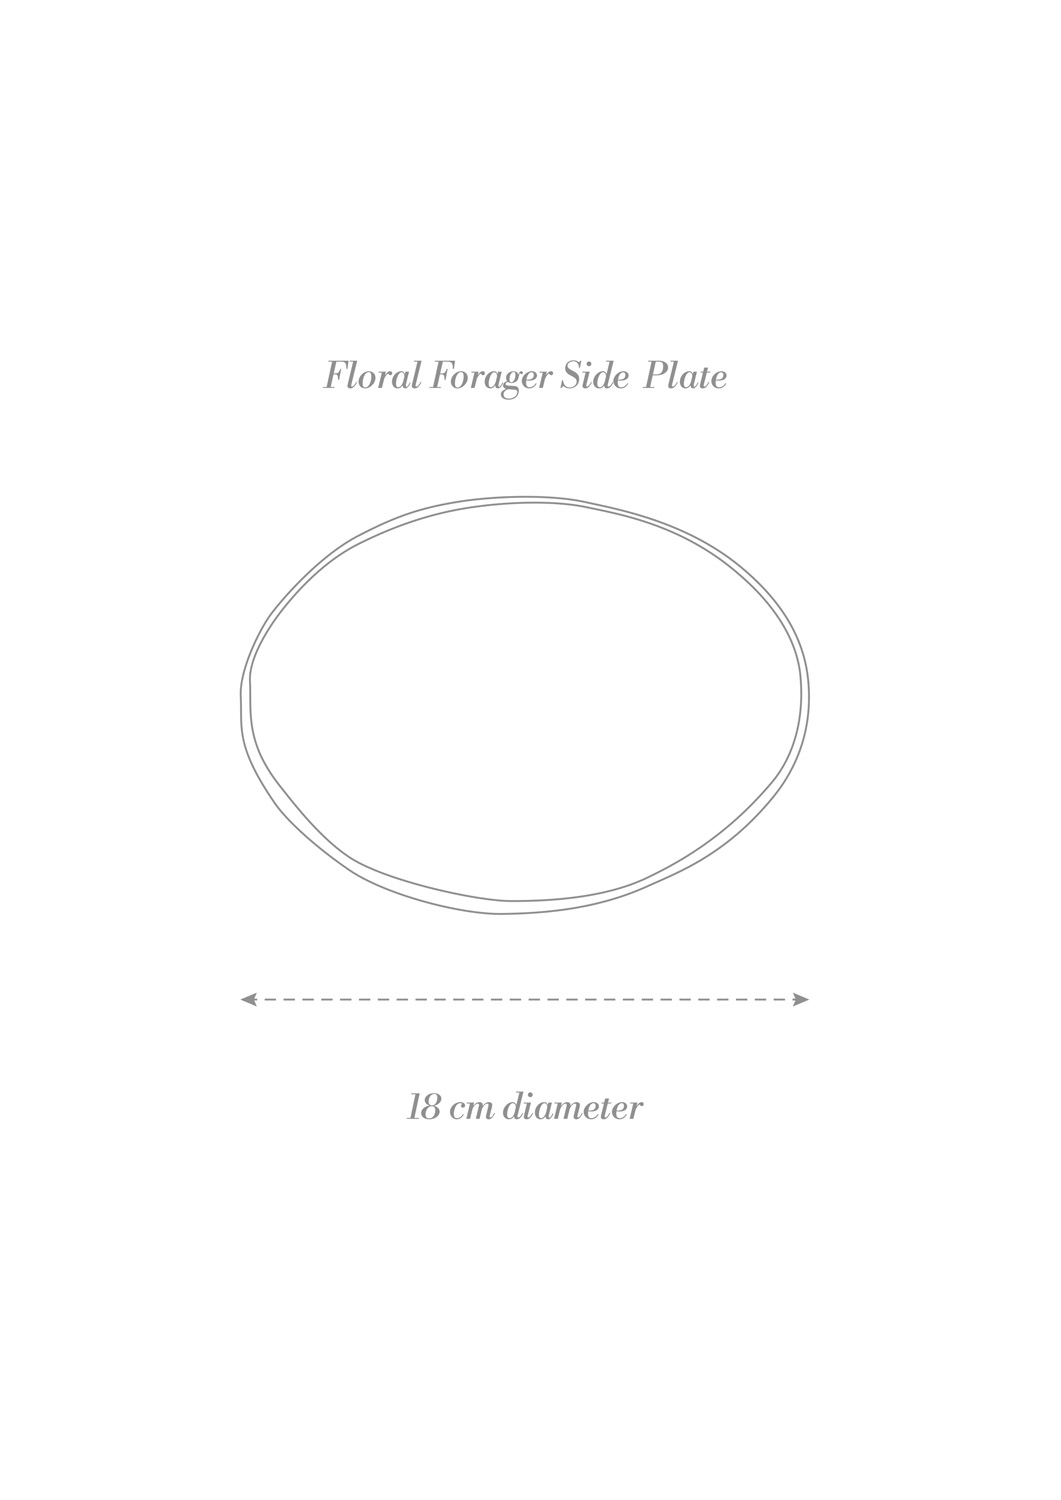 Floral Forager Side Plate Product Diagram